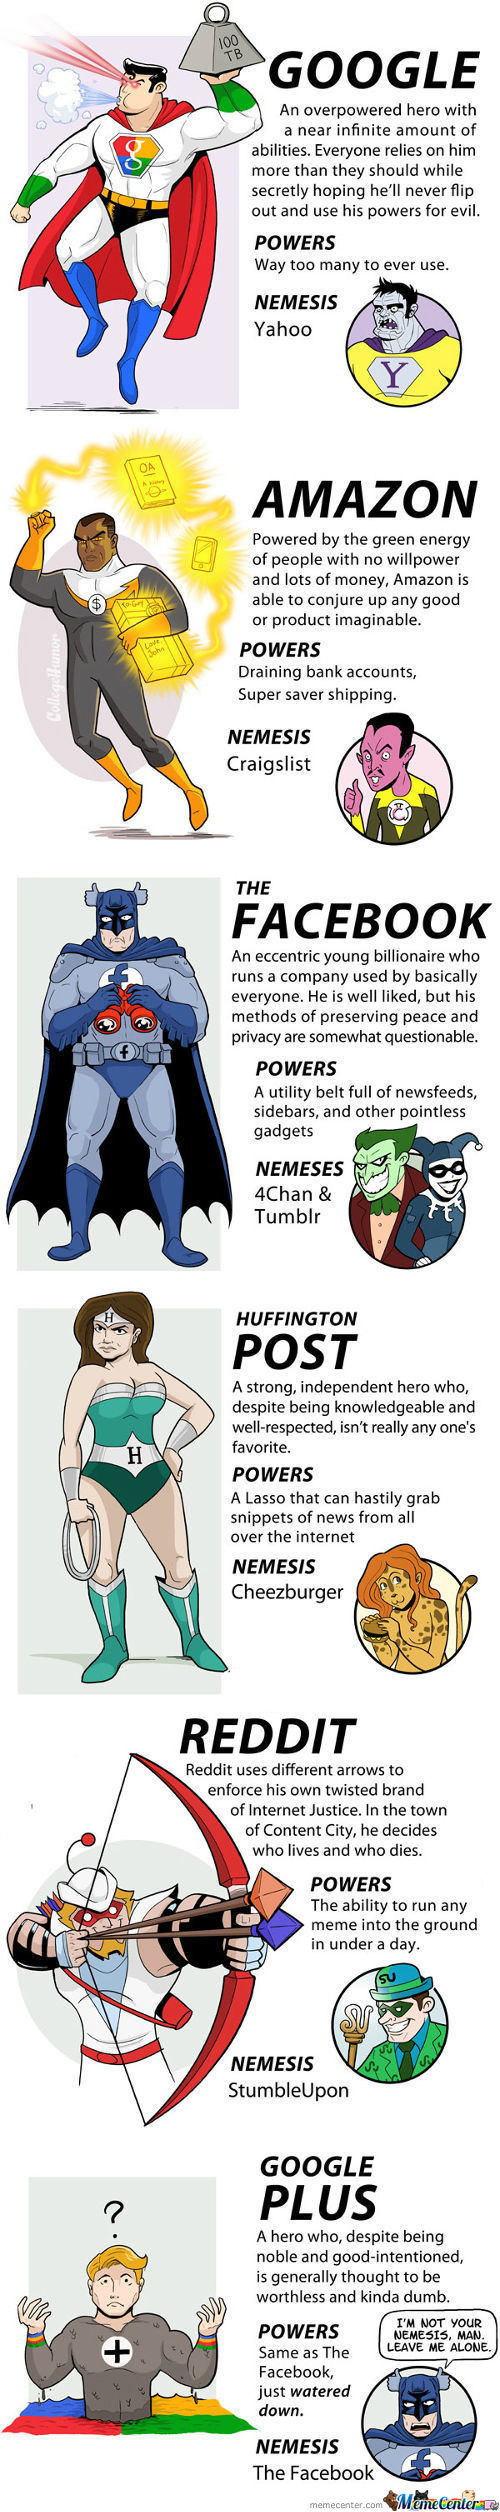 Online Superheroes: Battle For The Internet